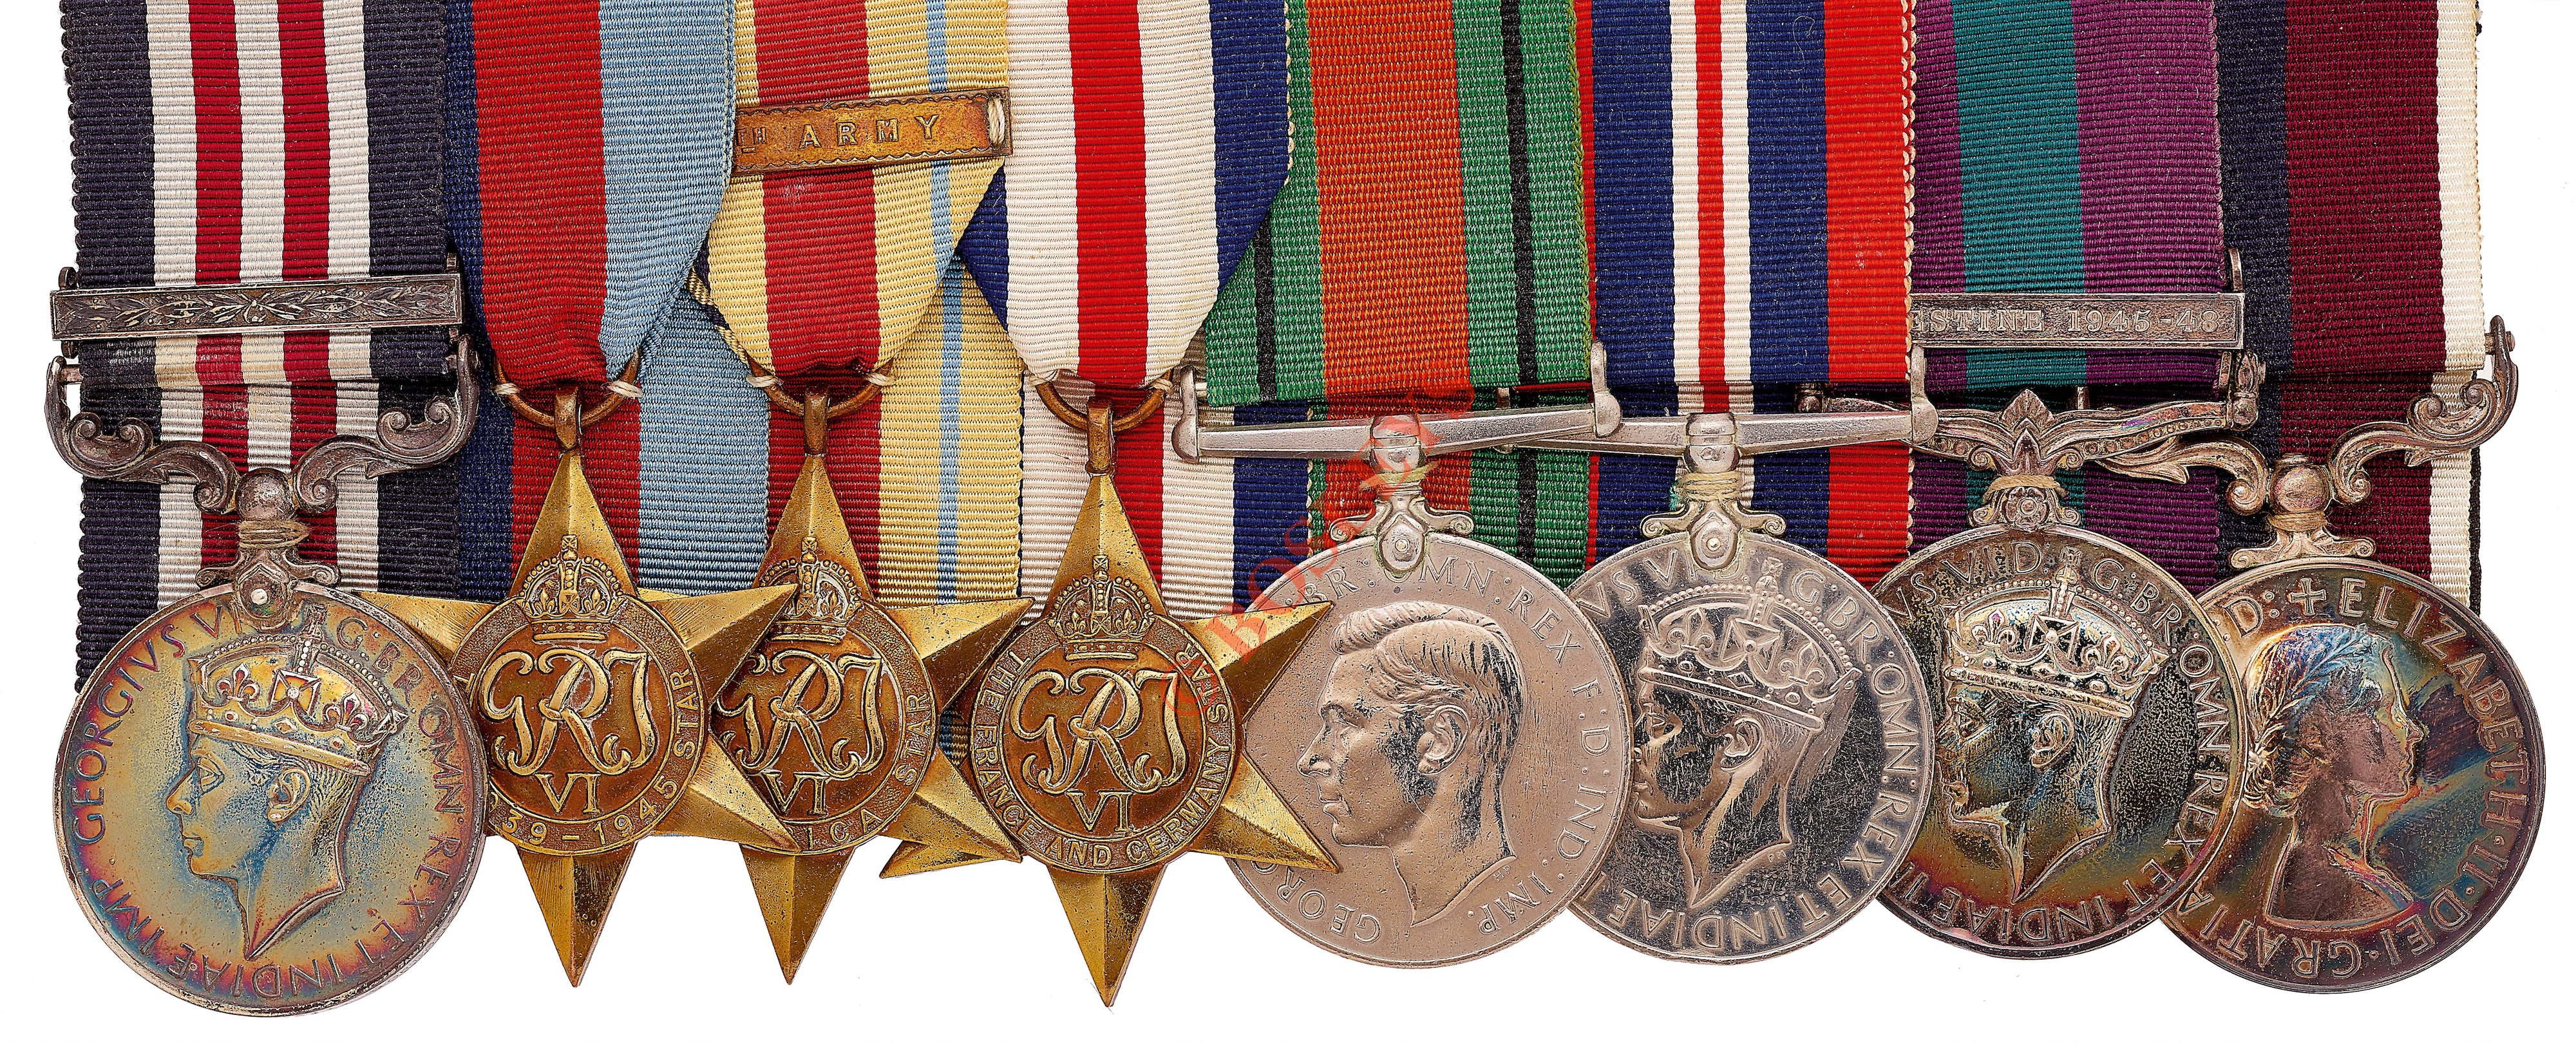 Lot 473 - Special Air Service Regimentally Important SAS Founding Father's Military Medal & Bar Group of 8